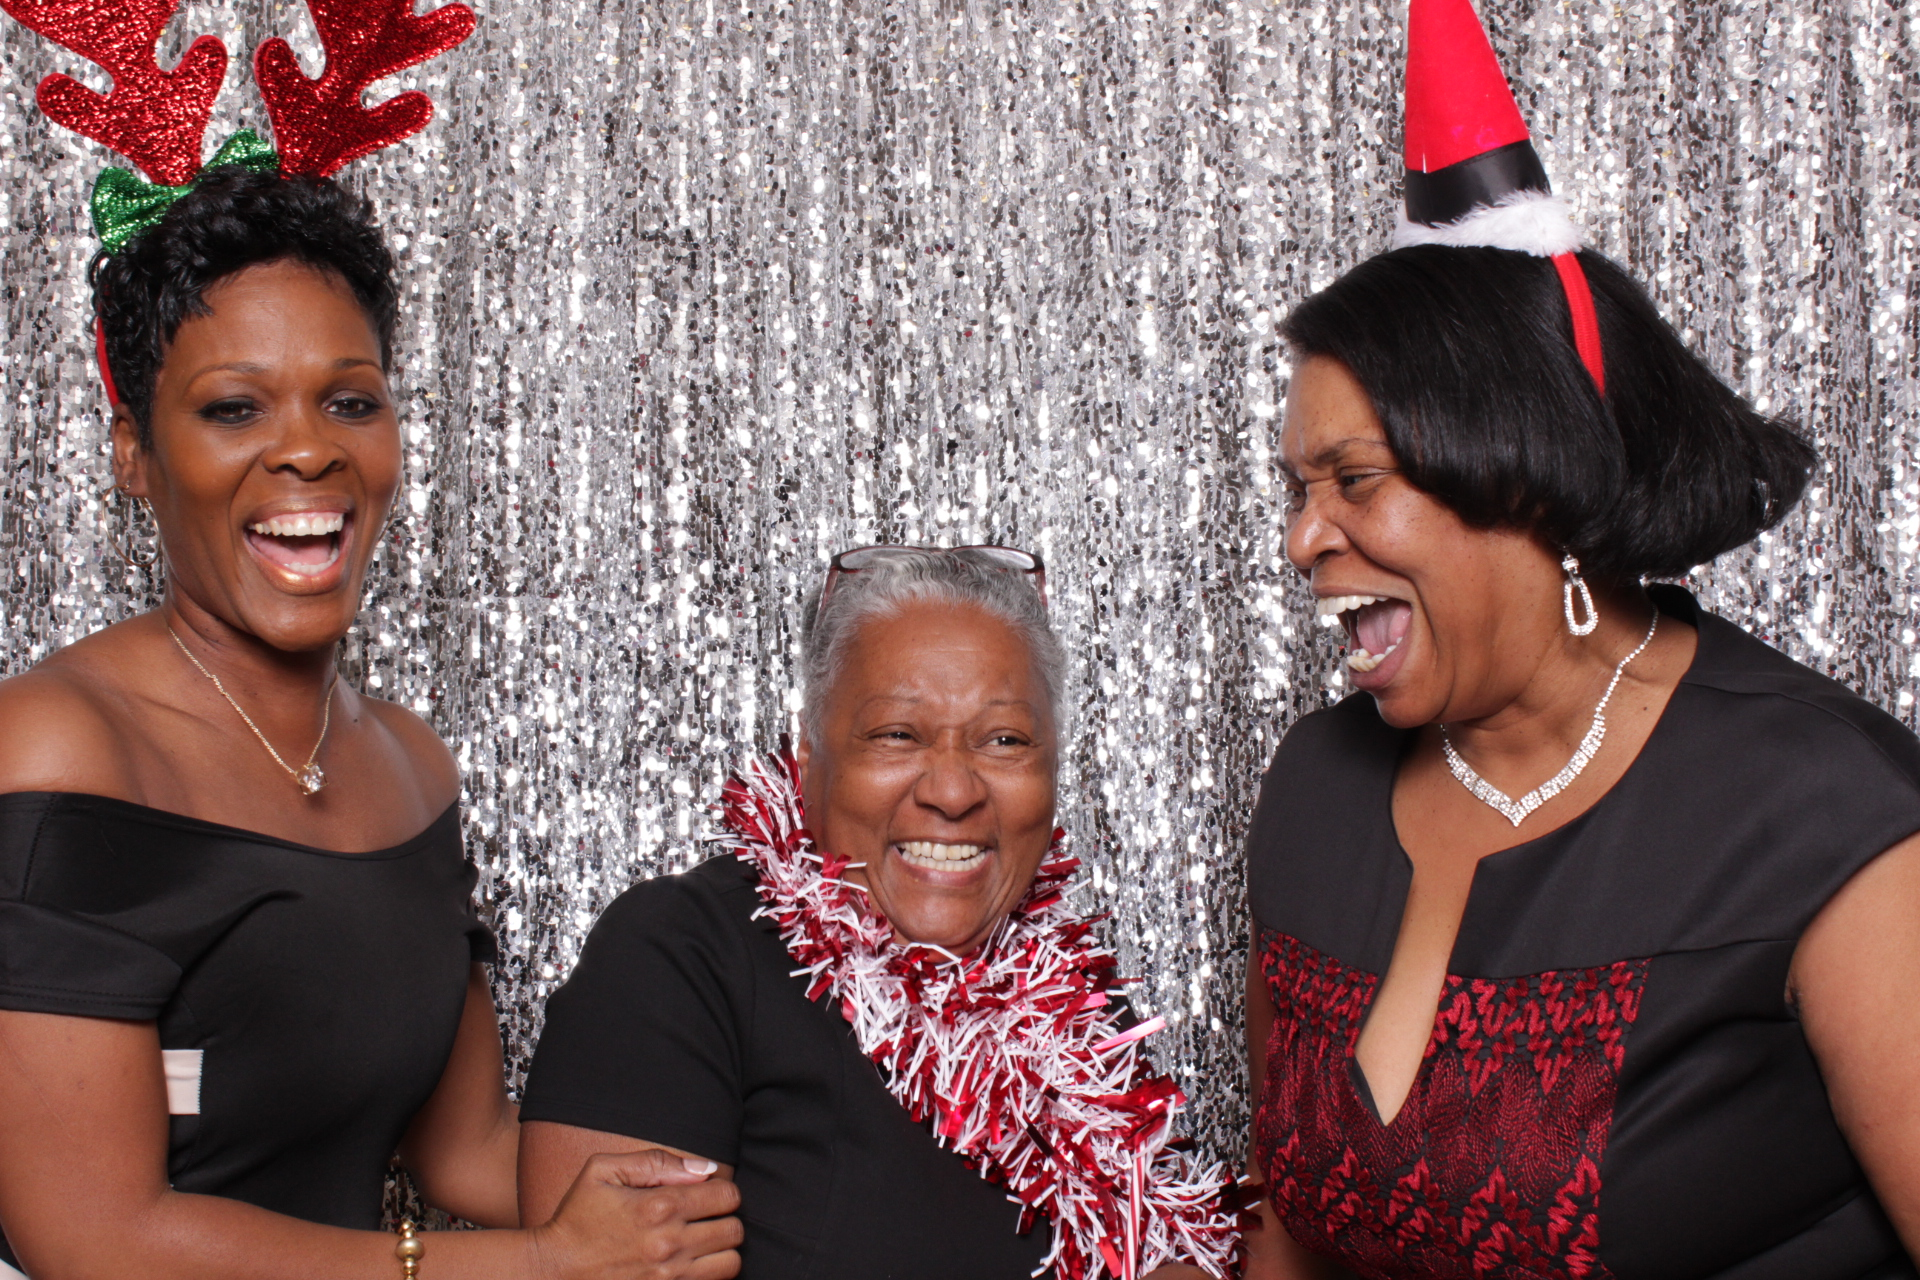 DC HOUSING FINANCE AGENCY | HOT PINK PHOTO BOOTH